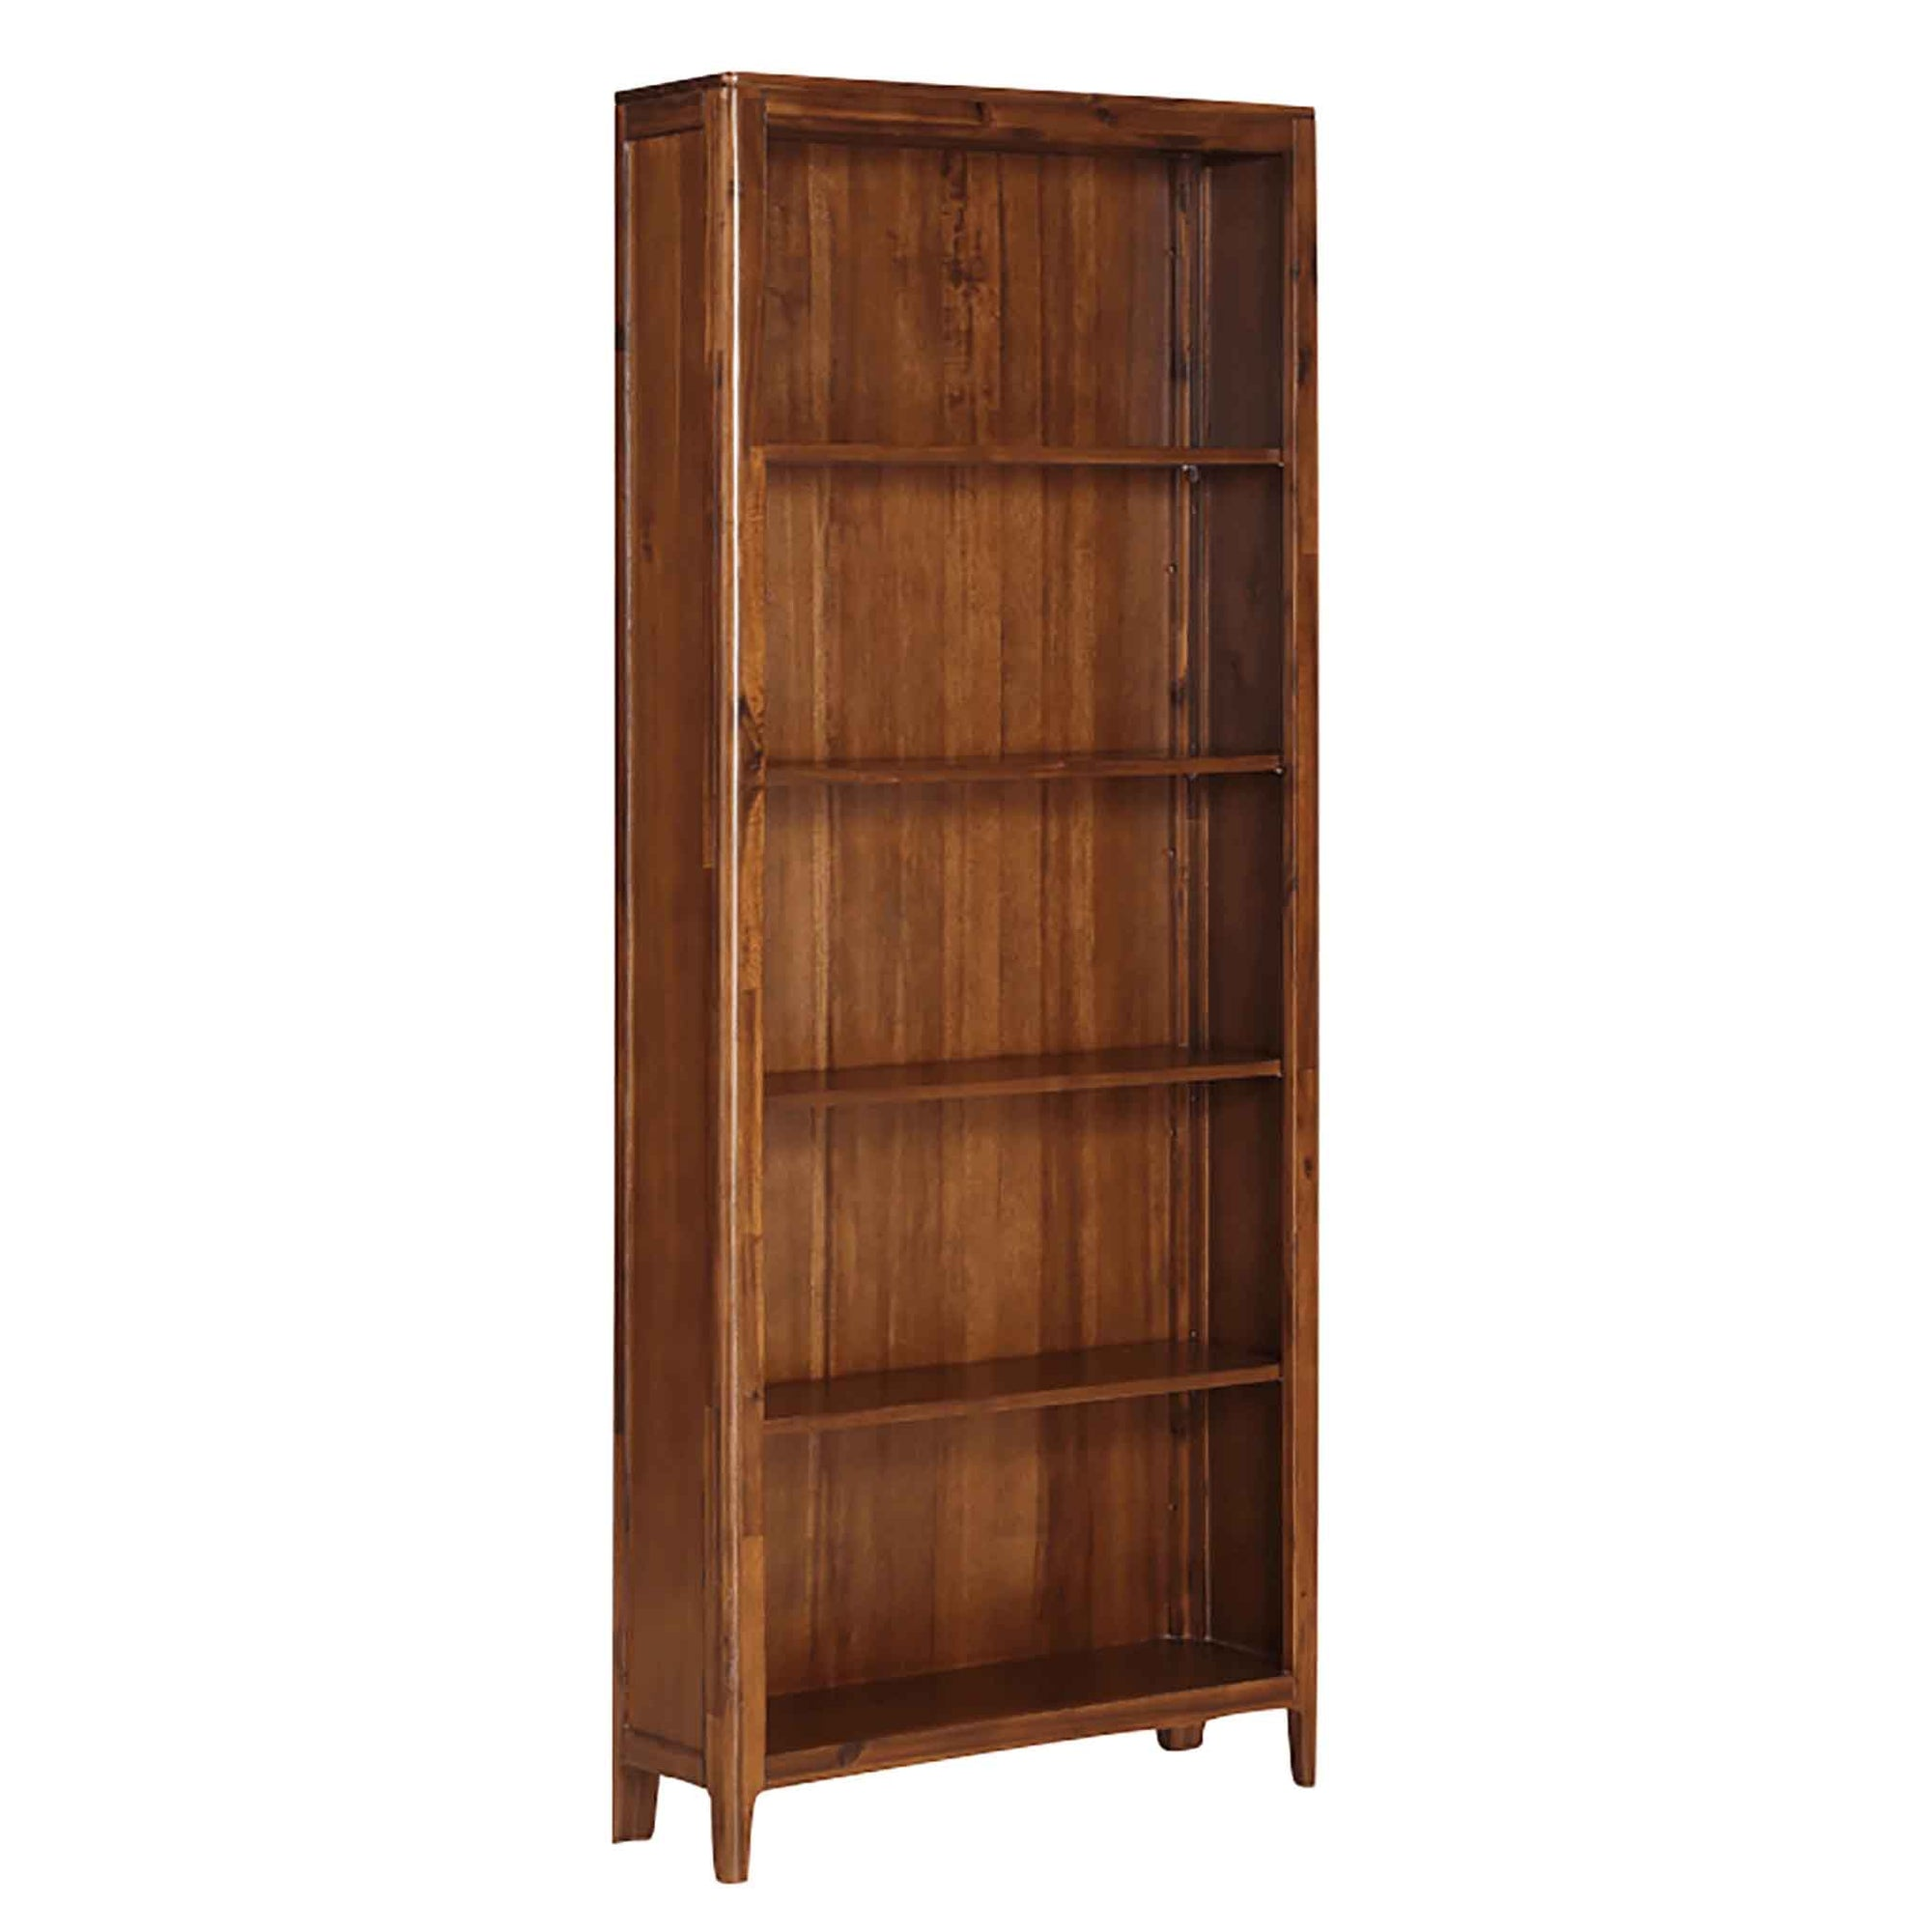 The Dunmore Acacia Dark Wood Large Bookcase with 5 Shelves from Roseland Furniture